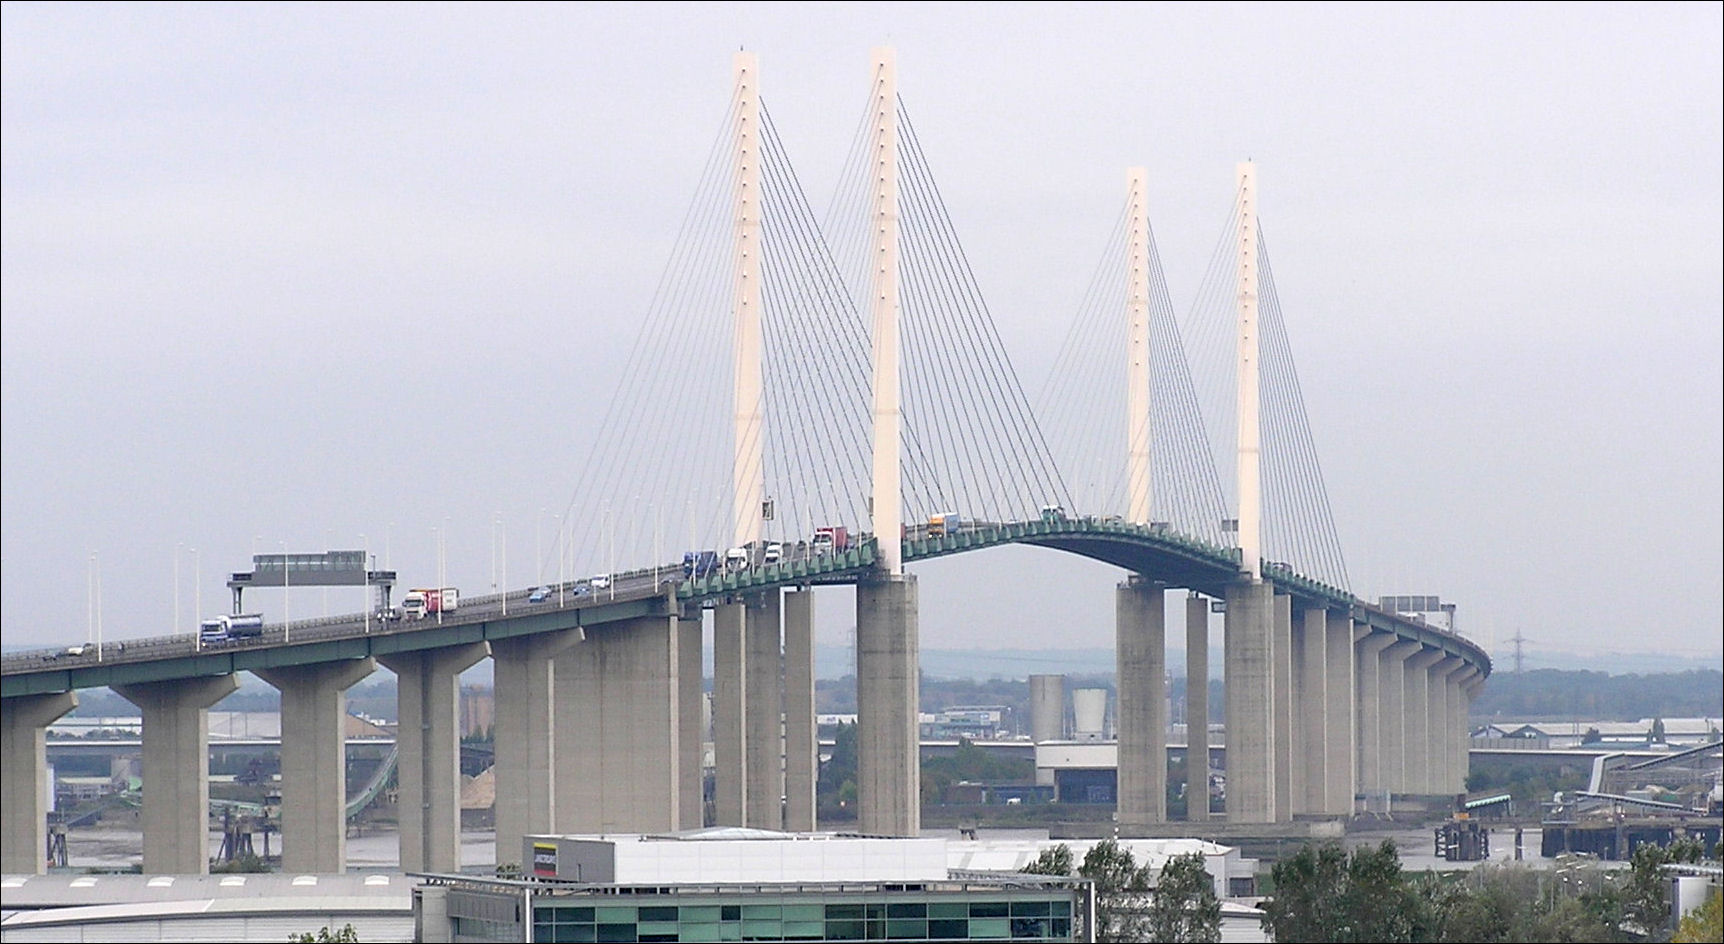 QEII Dartford bridge reopen following 18 hour closure due to high winds